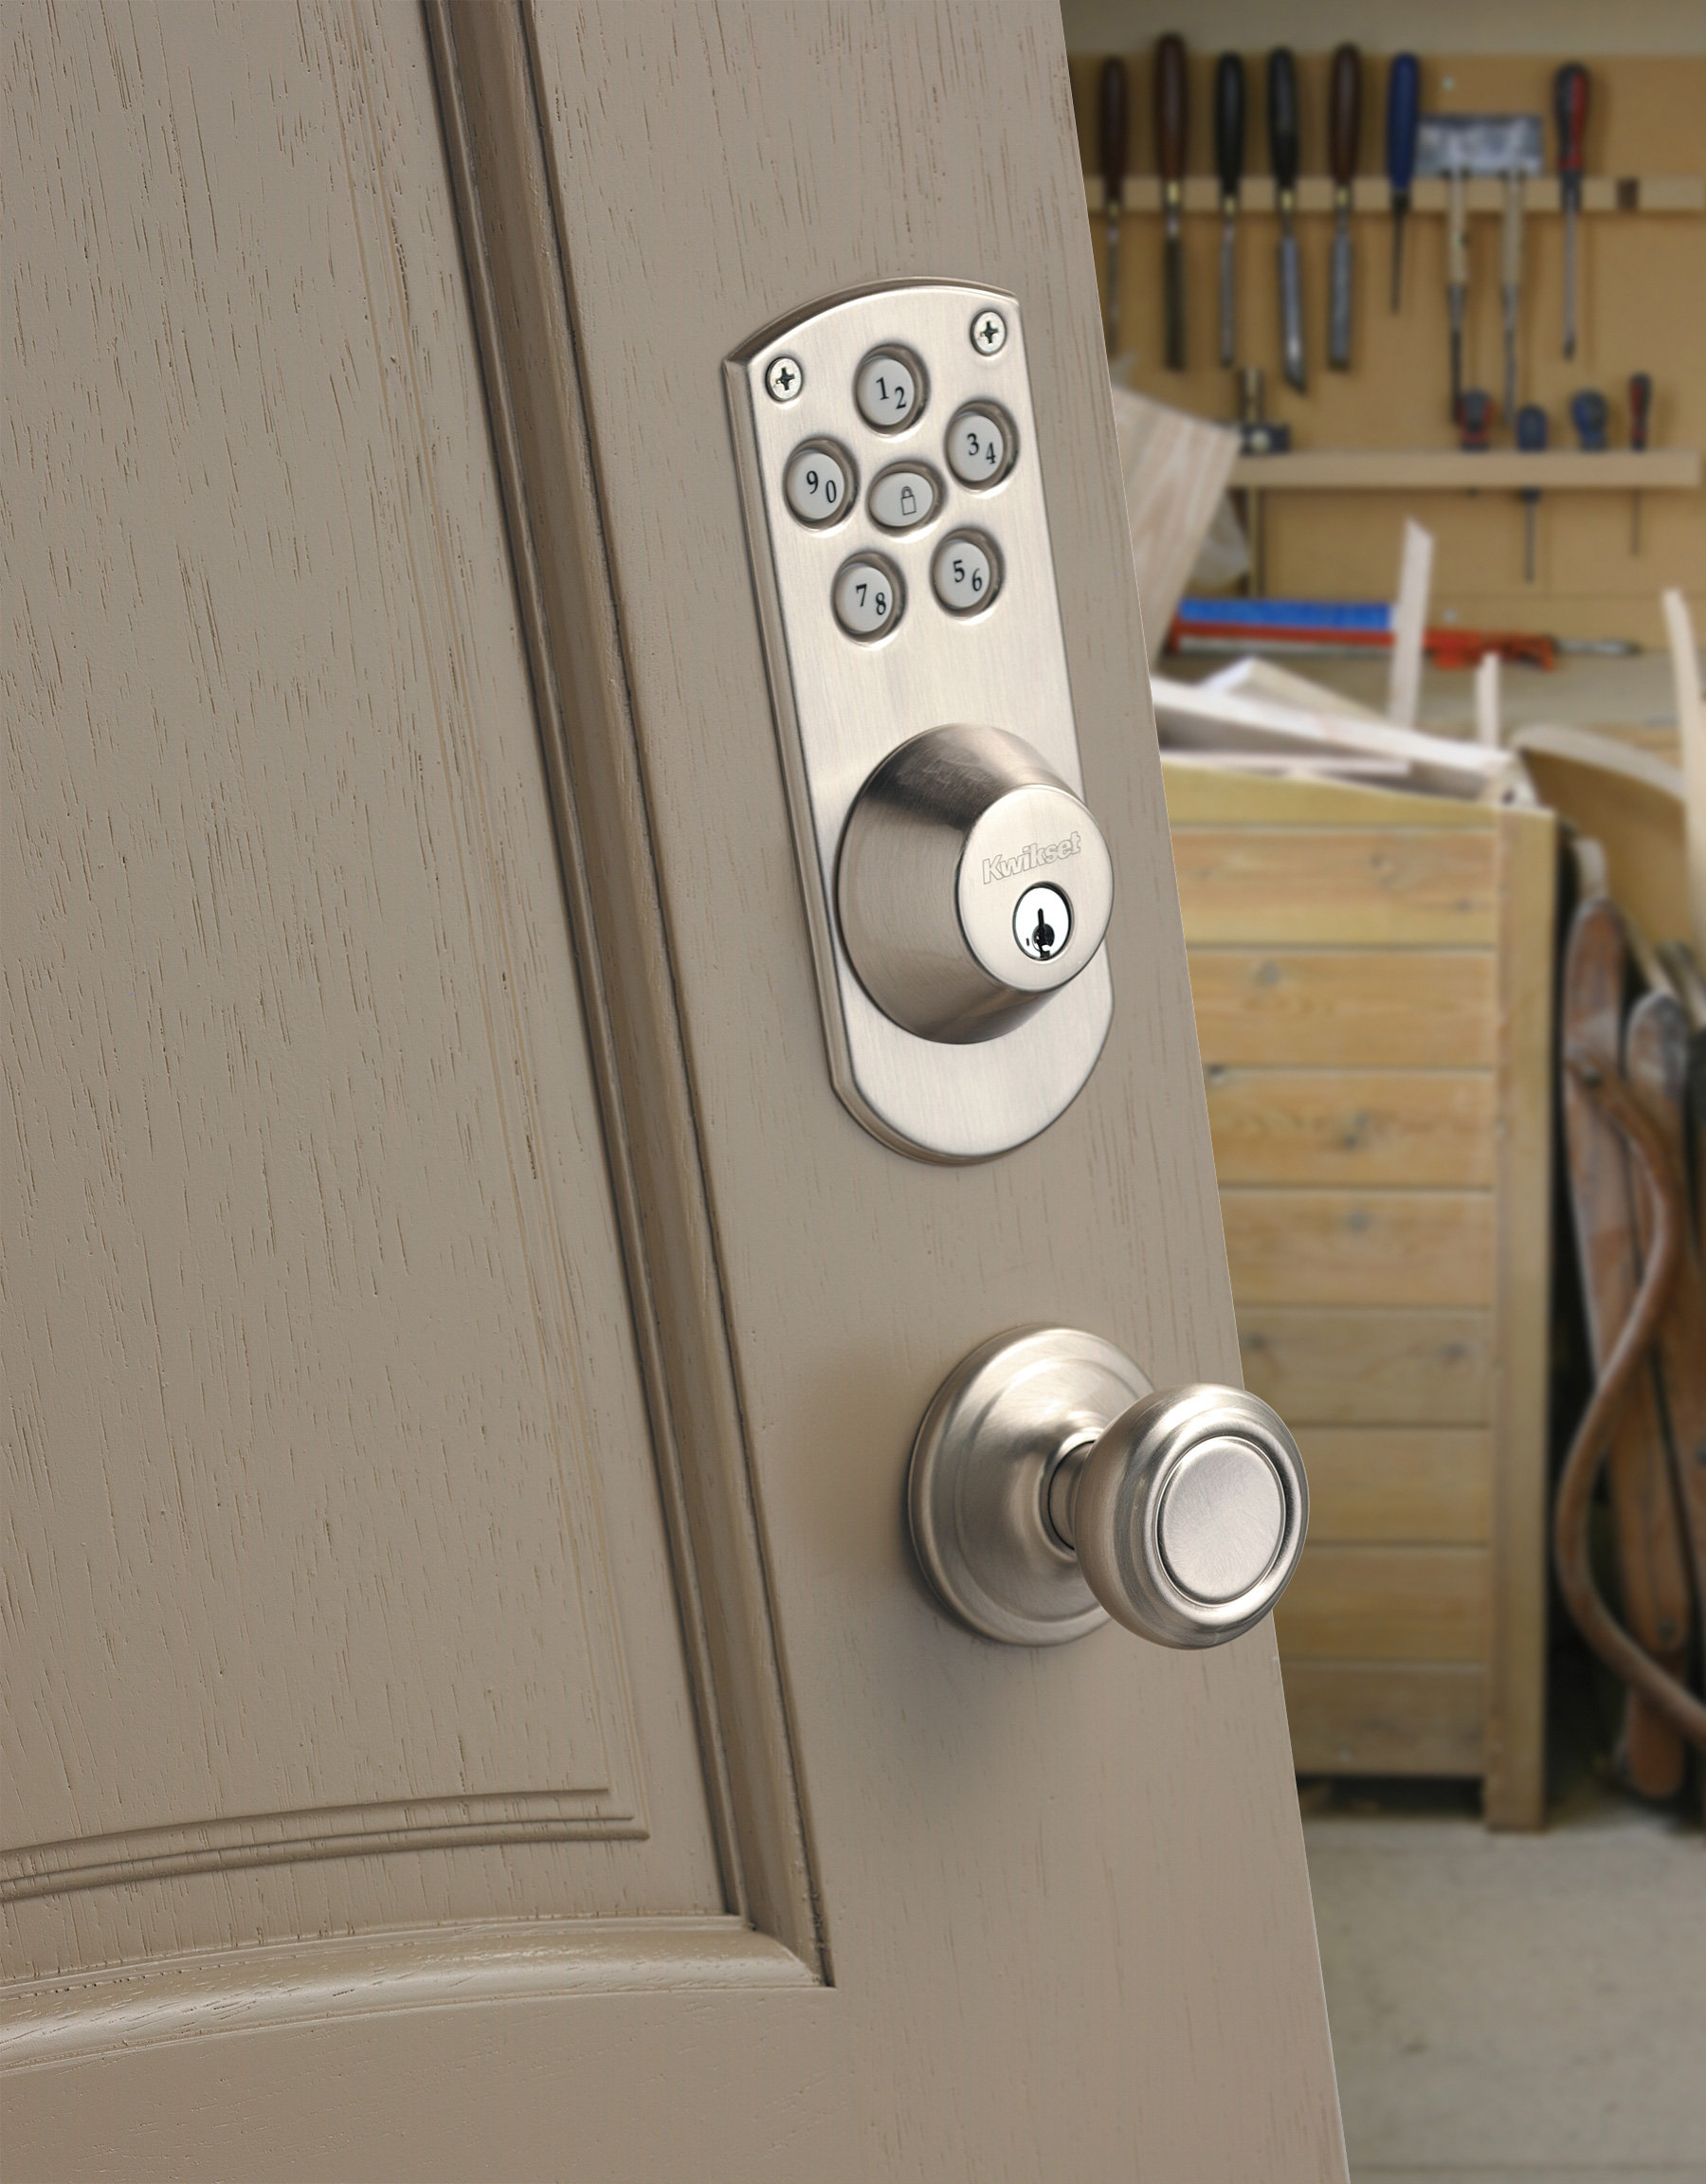 Kwikset 907 Powerbolt Electronic Deadbolt Featuring SmartKey In Satin Nickel